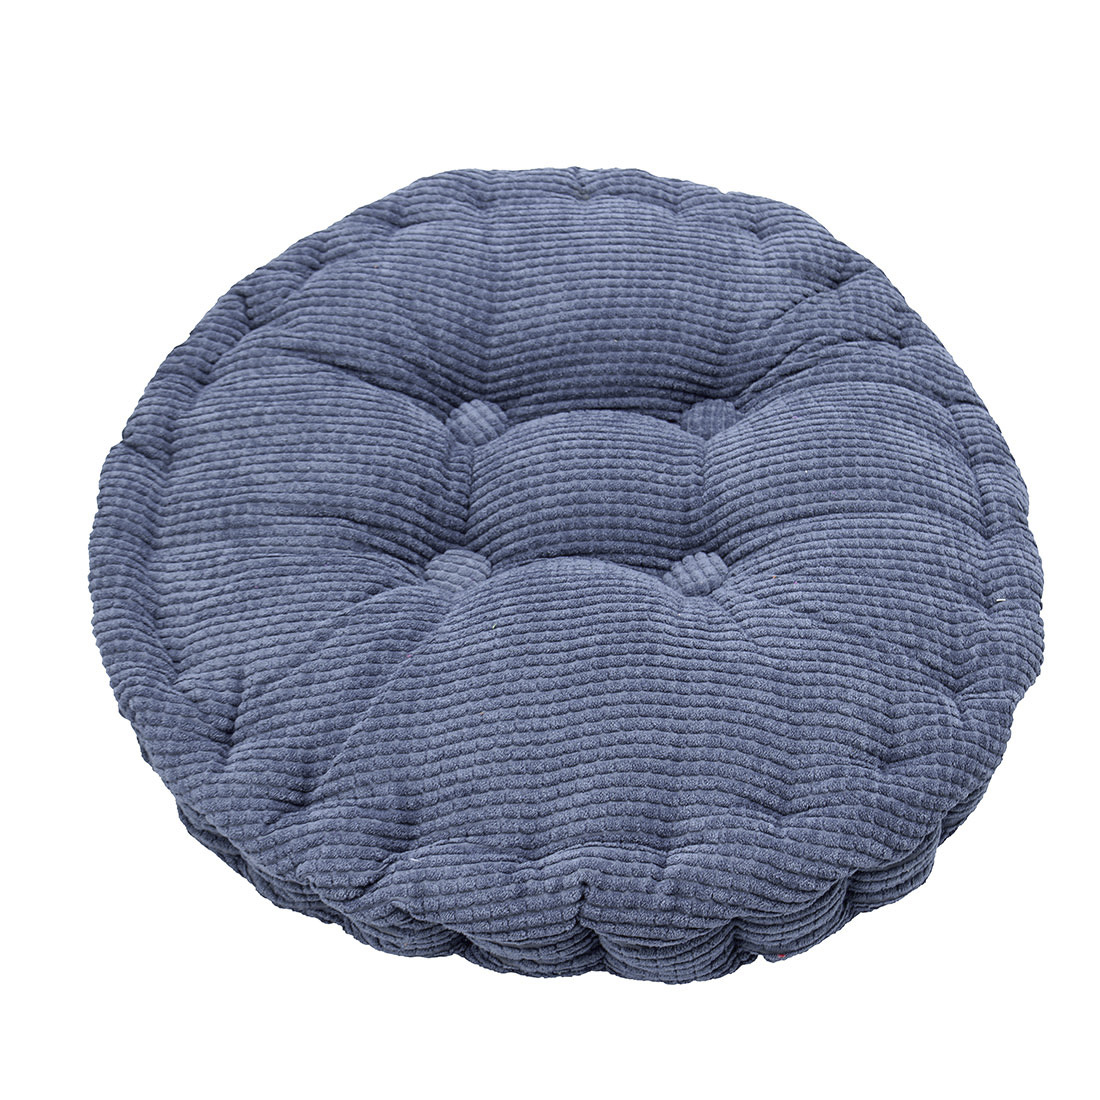 Home Corduroy Round Shaped Thickened Pillow Seat Chair Cushion Pad Mat Navy Blue